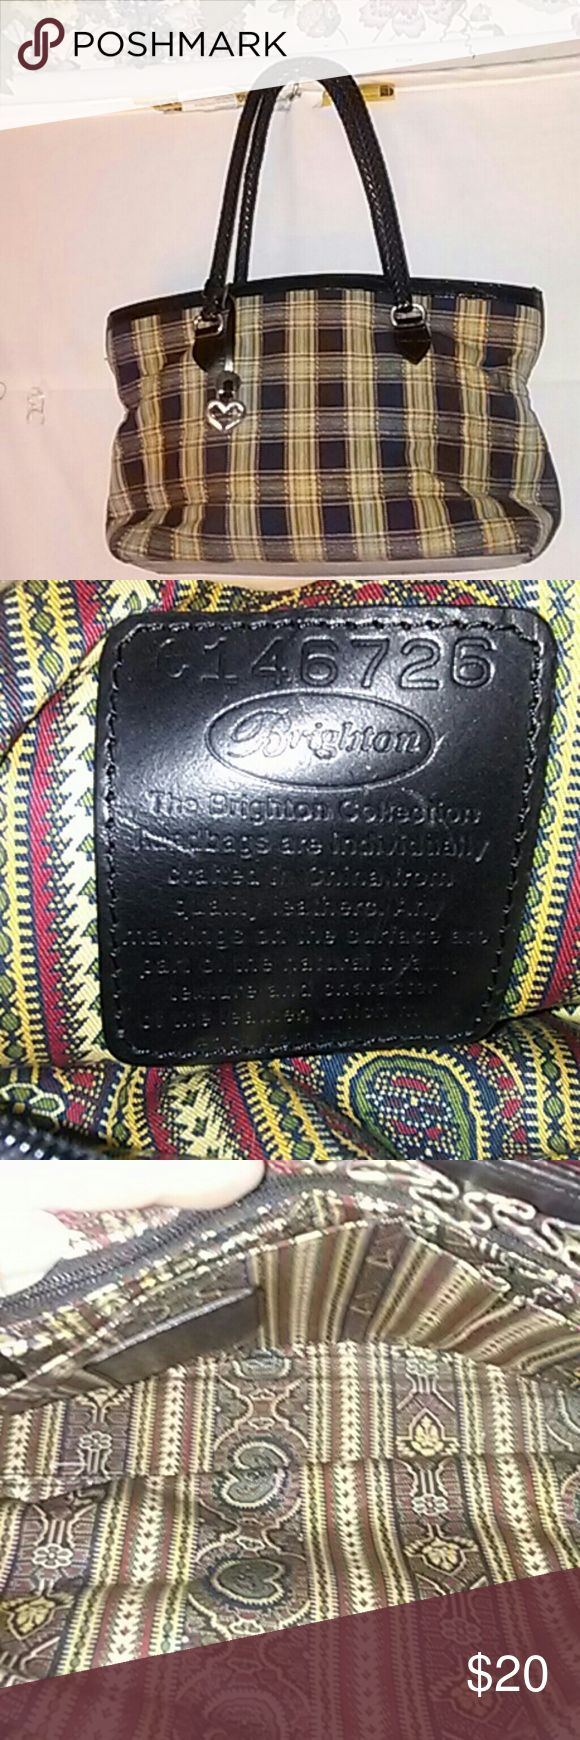 Brighton Multi-Color Striped Shoulder Bag Brighton Pre-owned Multi-Color Striped Shoulder Bag Inside: 2 pockets and 1 zippered pocket in middle Inside Back 2 slip pocket,1 pen pocket and 1 zippered pocket  Height: 9 inches Depth: 7 inches  Length:  11 inches  Strap drop:  10 inches  It has scratches in the bottom.  Normal wear from use. It good condition.  If you have any questions or you need anymore pictures please let me know. Thanks for looking. Brighton Bags Shoulder Bags